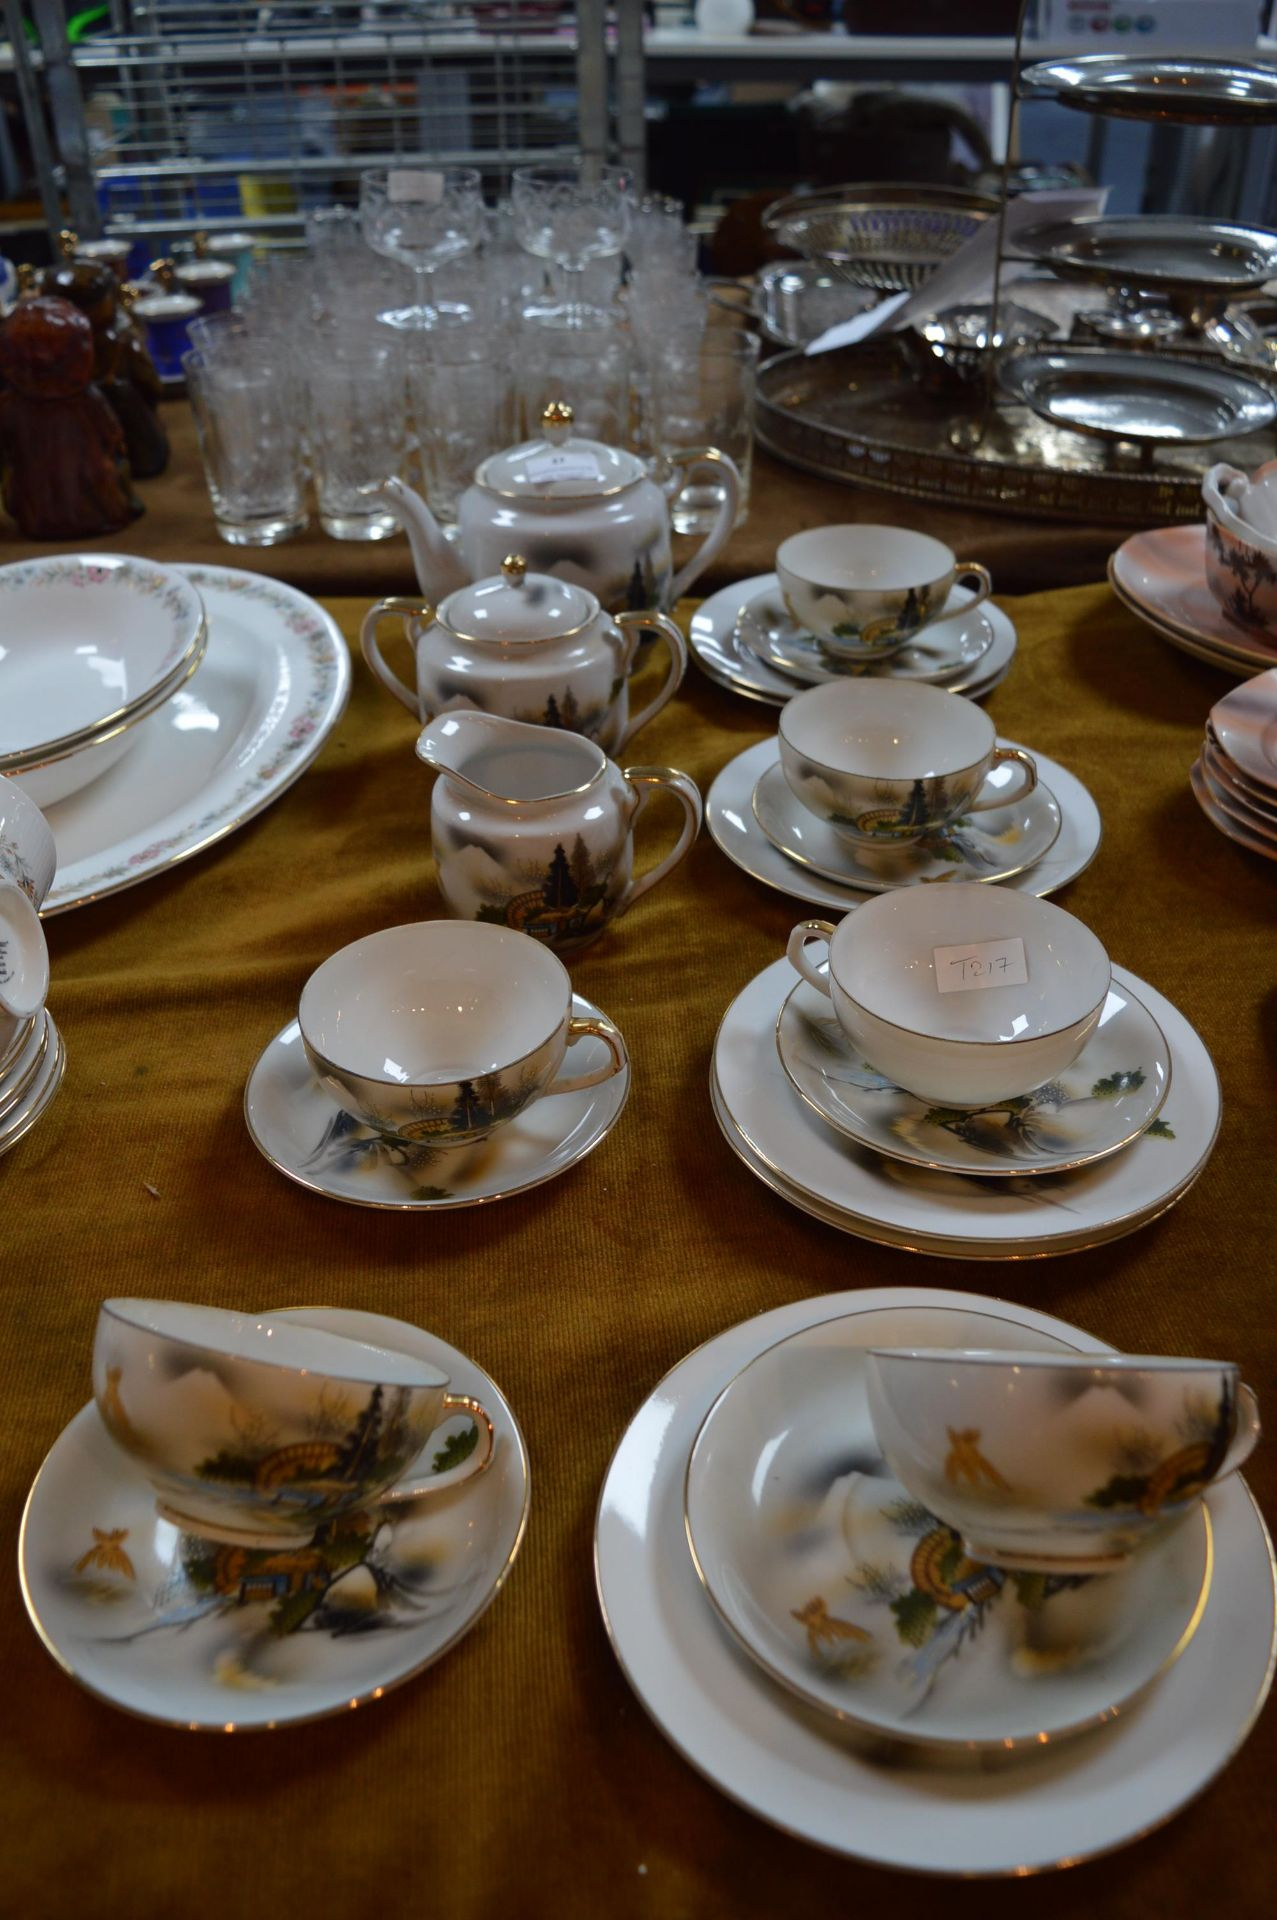 Lot 27 - Chinese Porcelain Tea Set (22 Pieces)